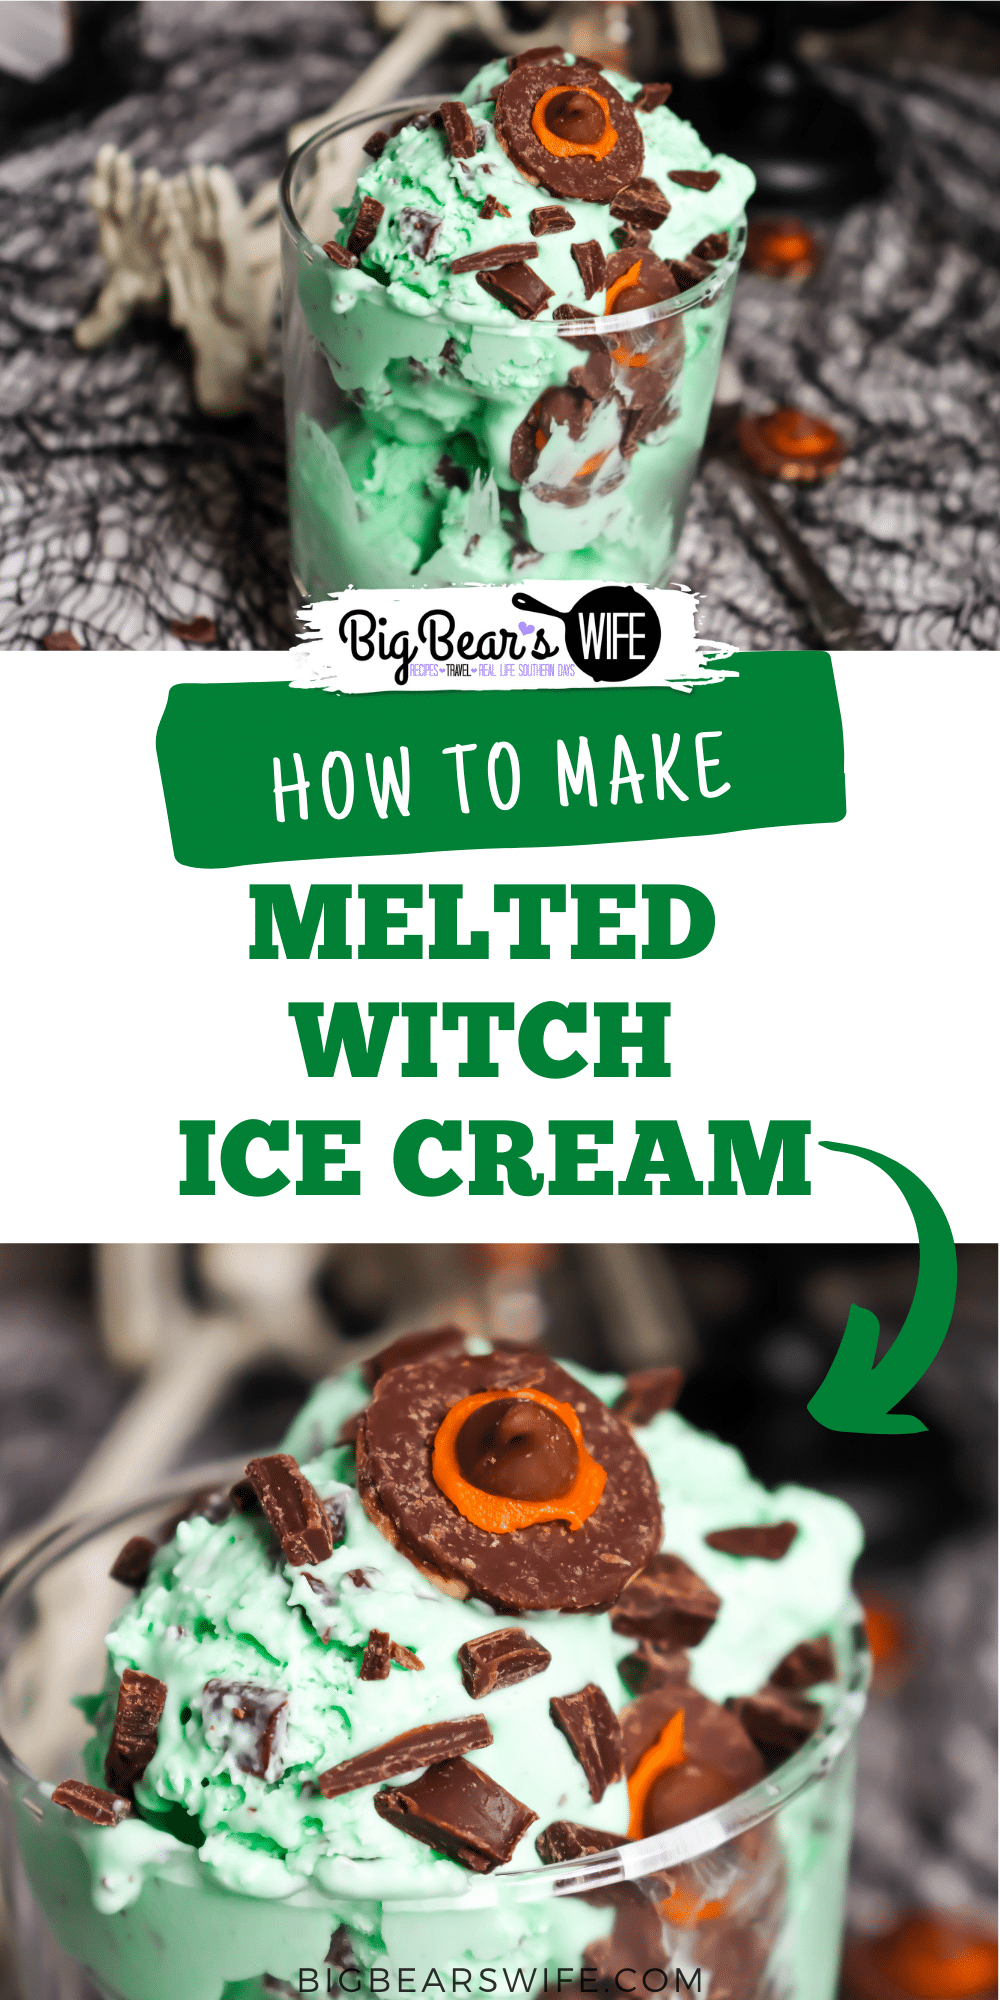 Melted Witch Ice Cream - a homemade, creamy mint chocolate chip ice cream that is perfect for Halloween because it is topped with mini cookie witch hats!  via @bigbearswife